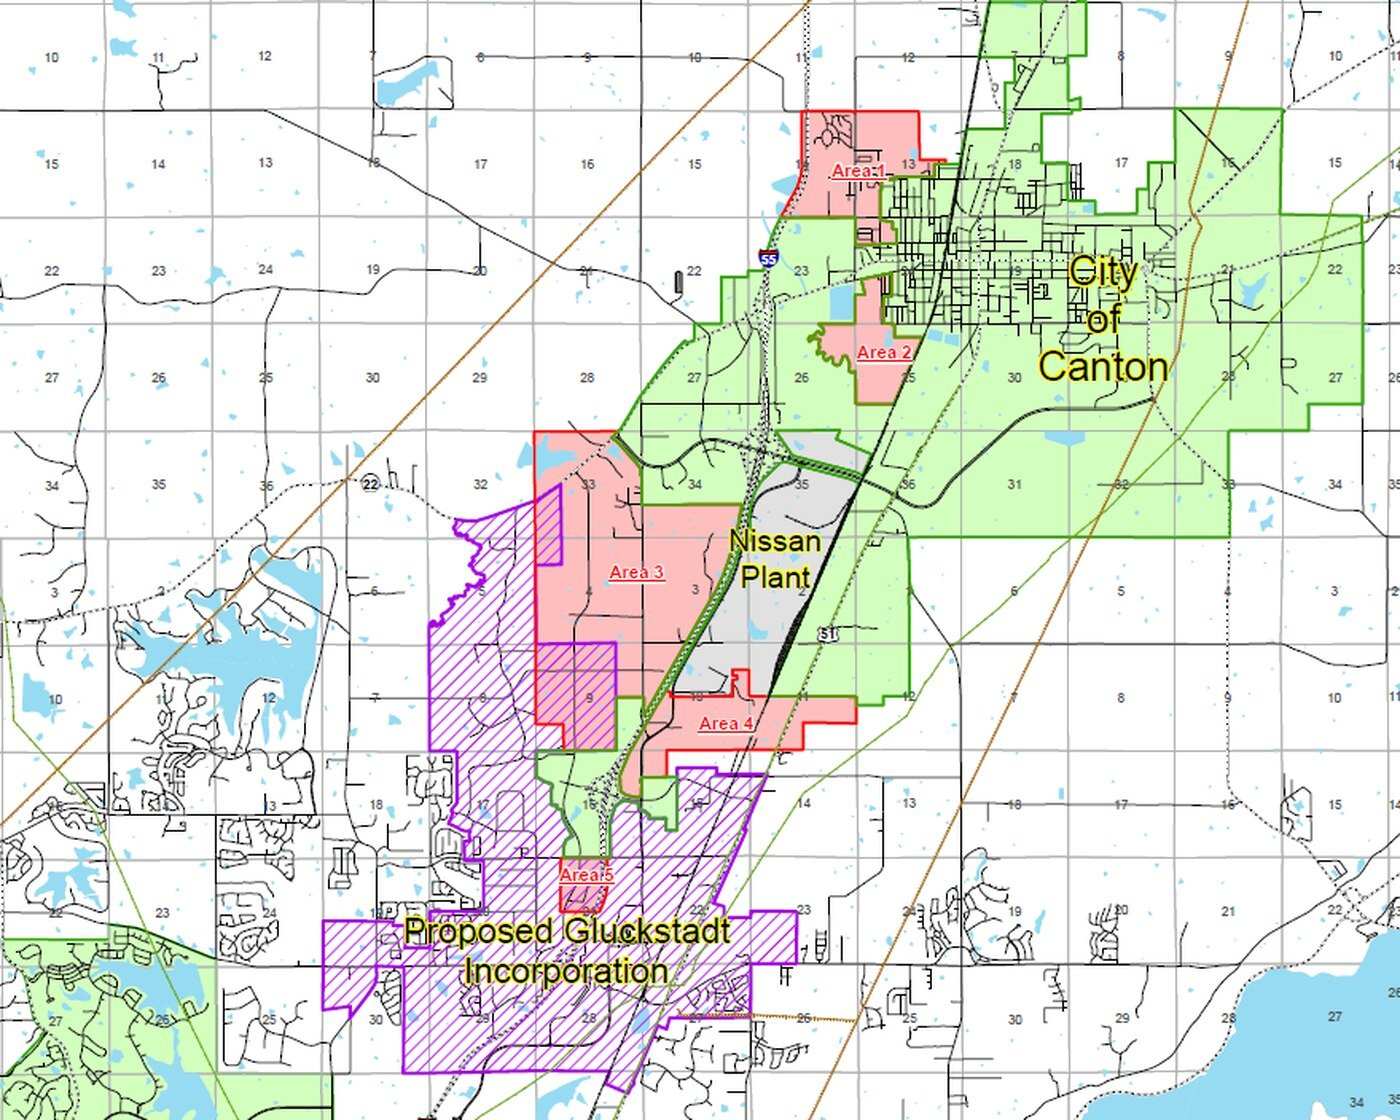 This map shows the proposed Gluckstadt boundaries as well as Canton's annexation requests.